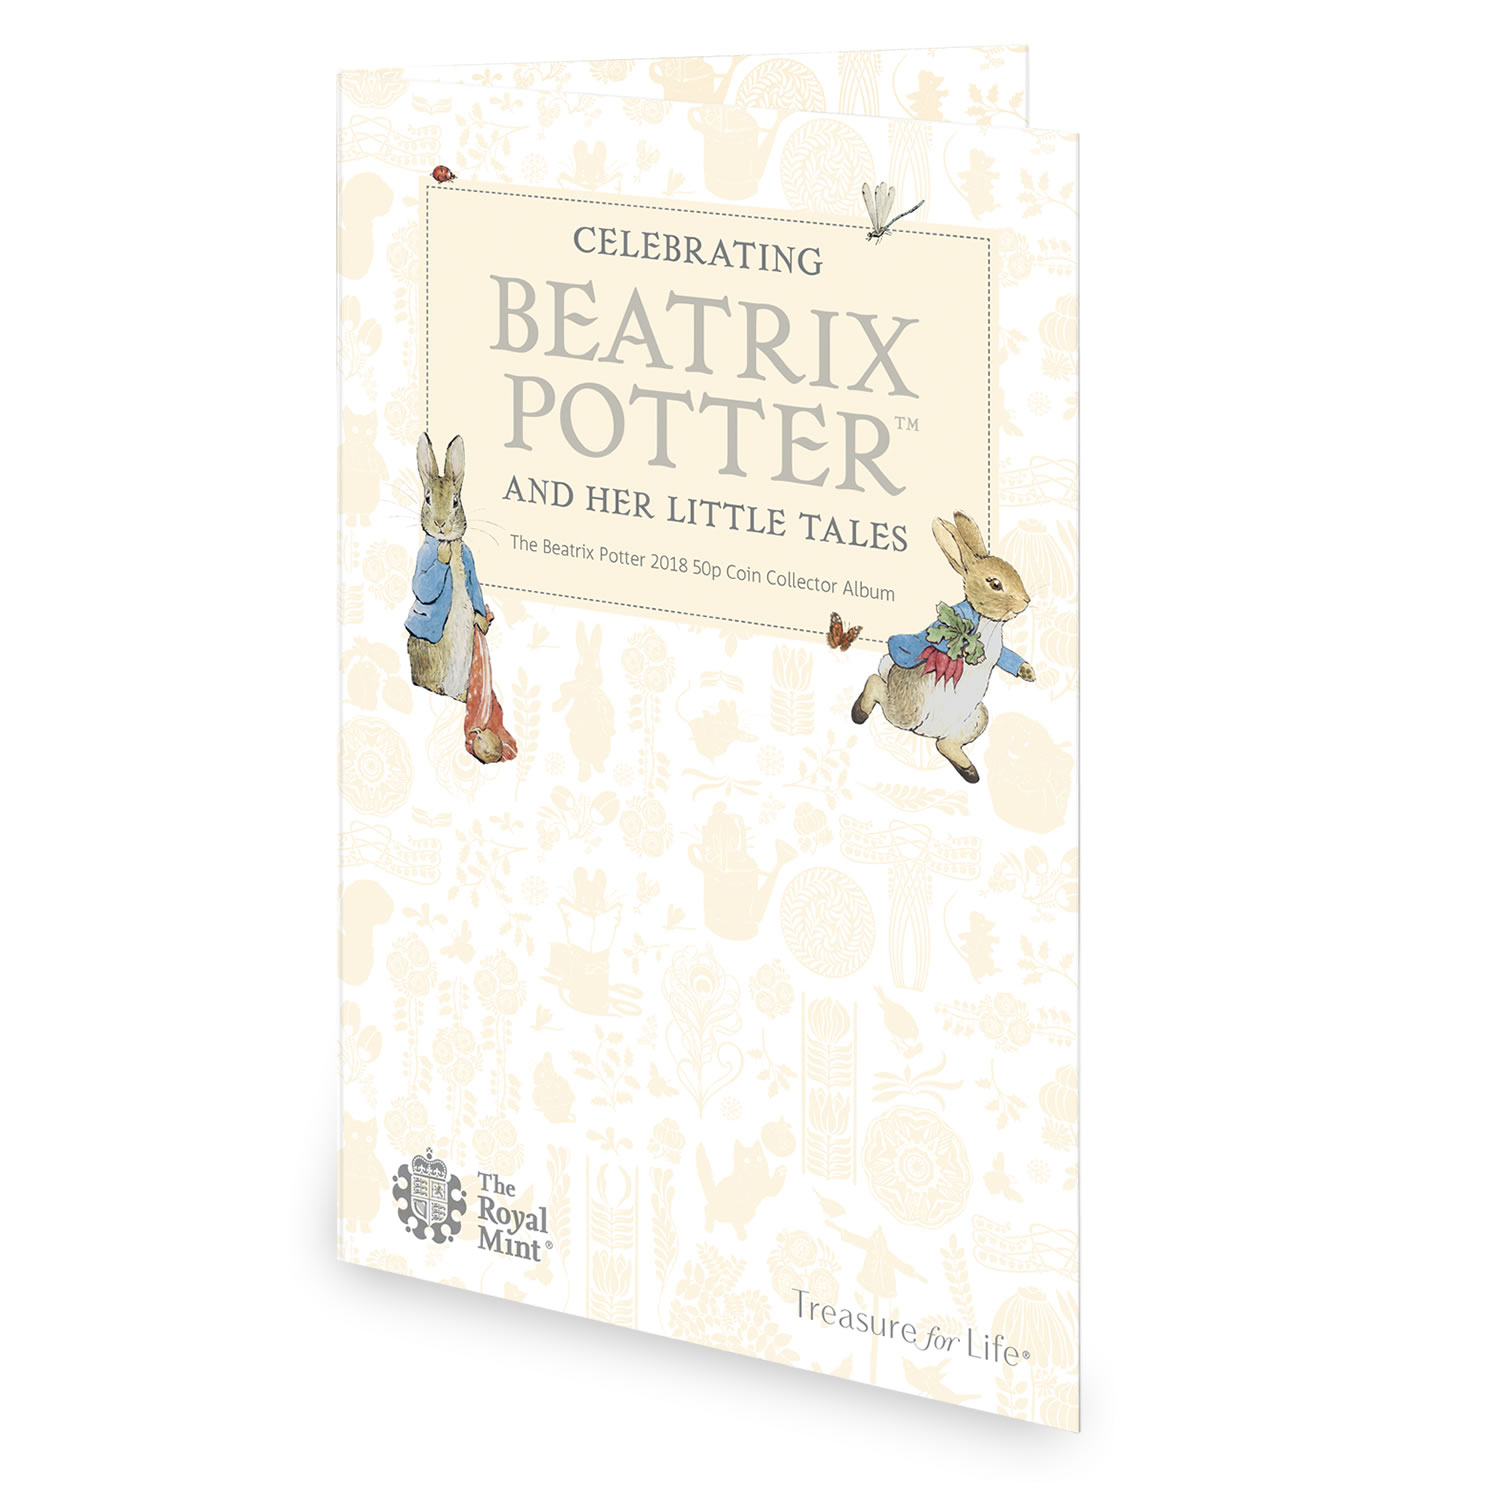 Beatrix Potter 2018 50p Coin Collector Album